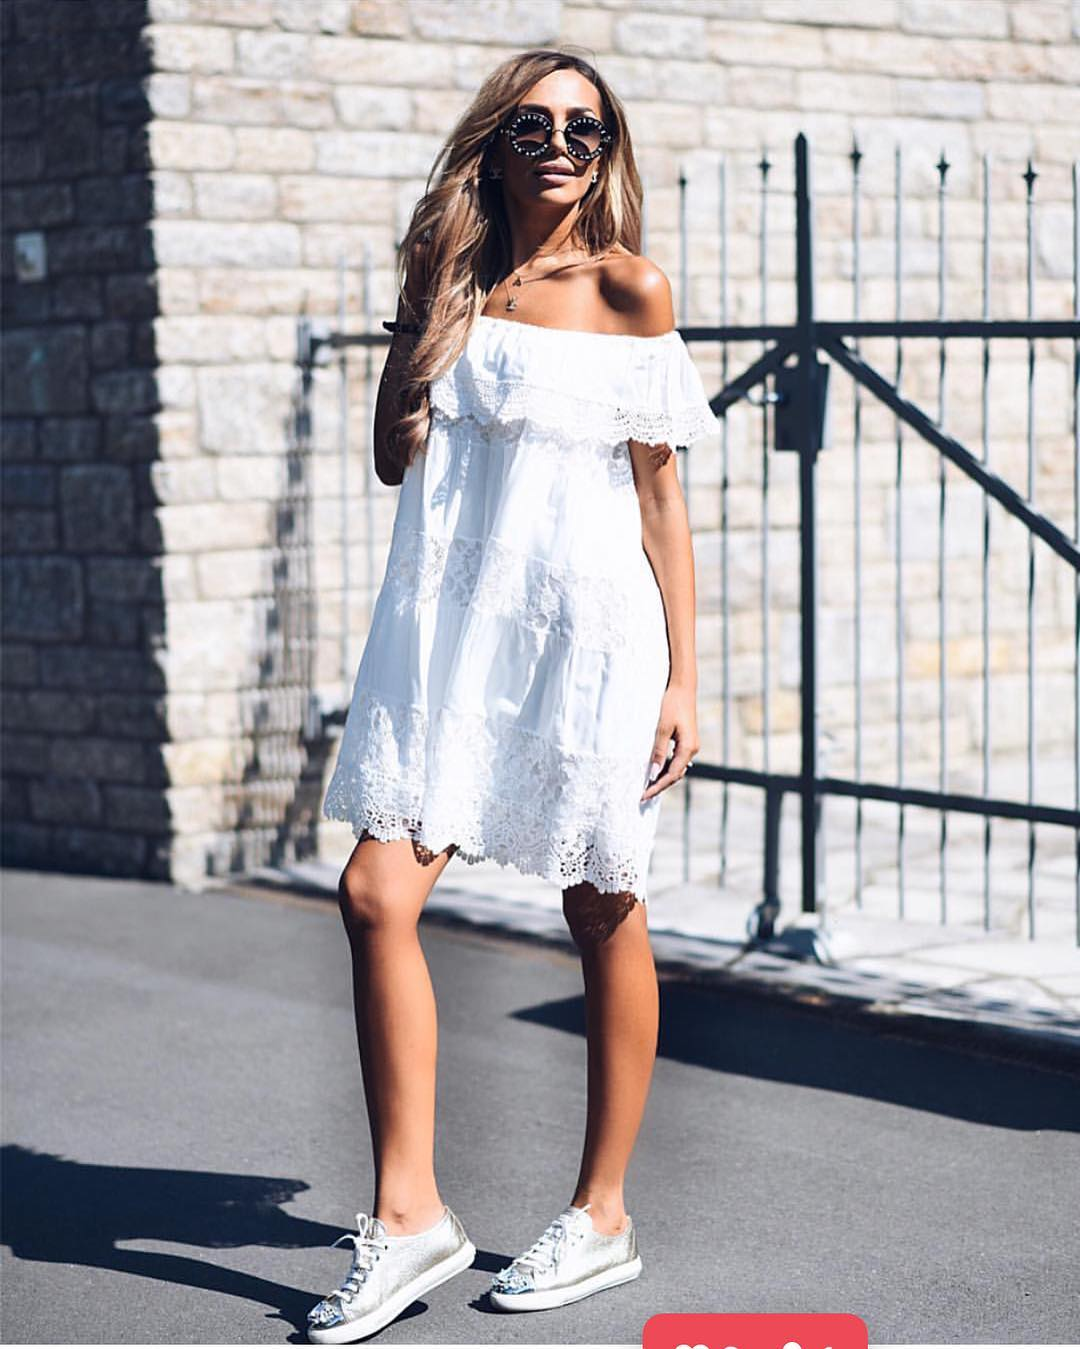 Off Shoulder White Crochet Dress And Silver Sneakers For Summer 2020